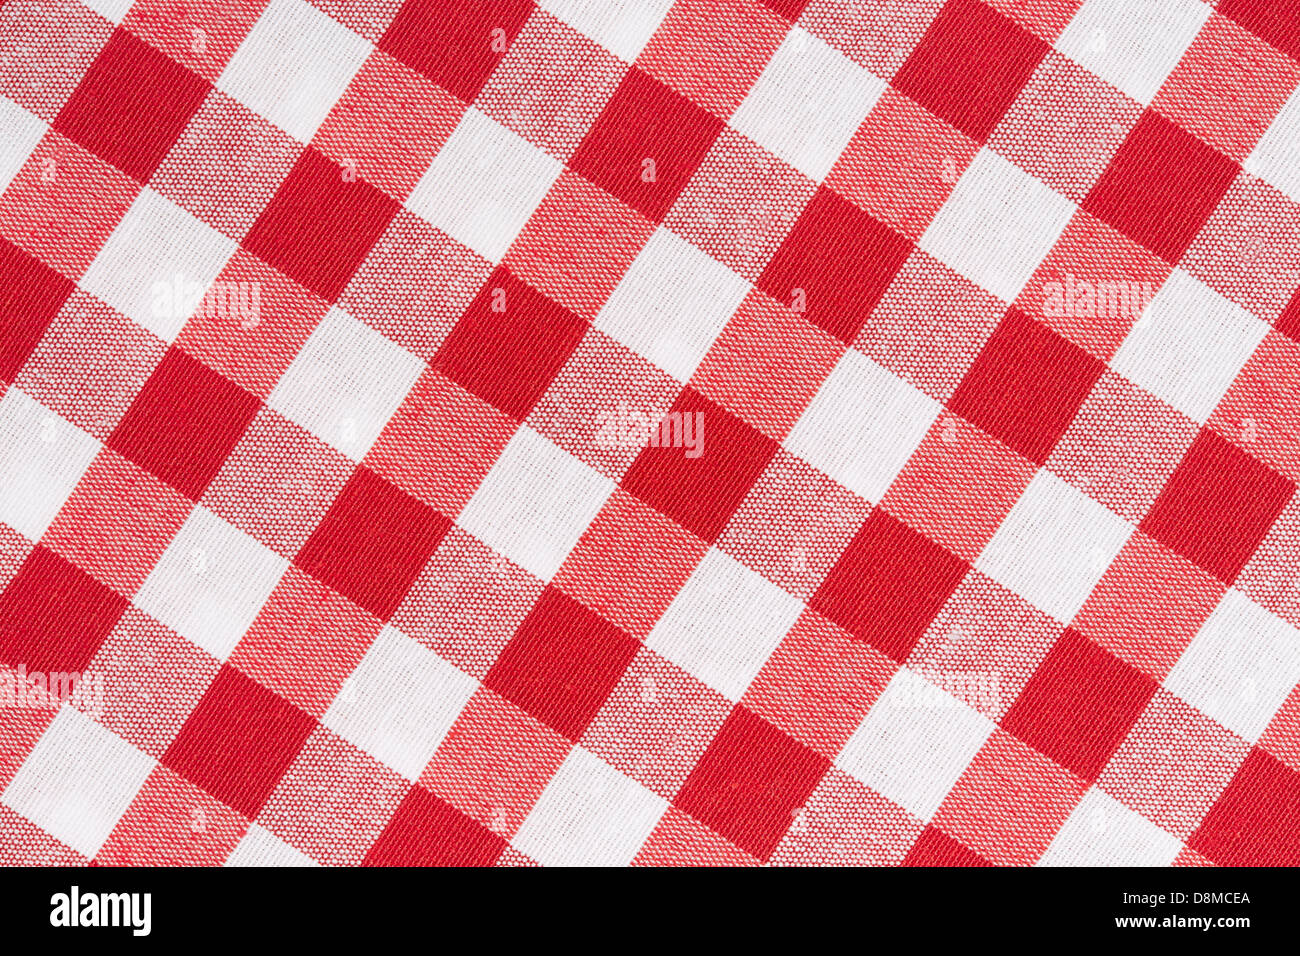 Red and white gingham tablecloth diagonal texture background - Stock Image